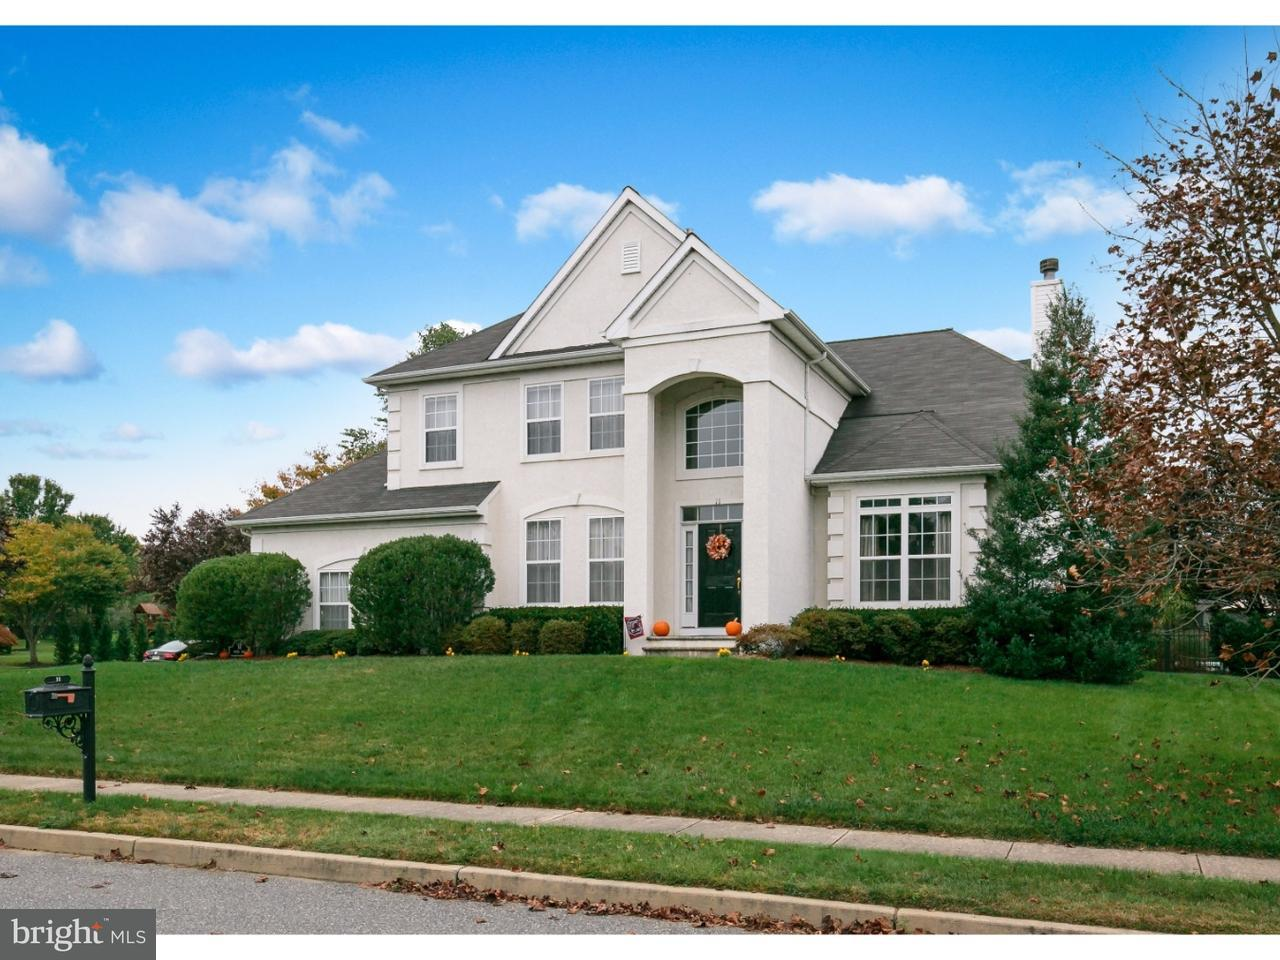 Single Family Home for Sale at 11 WATERS EDGE Drive Delran, New Jersey 08075 United States